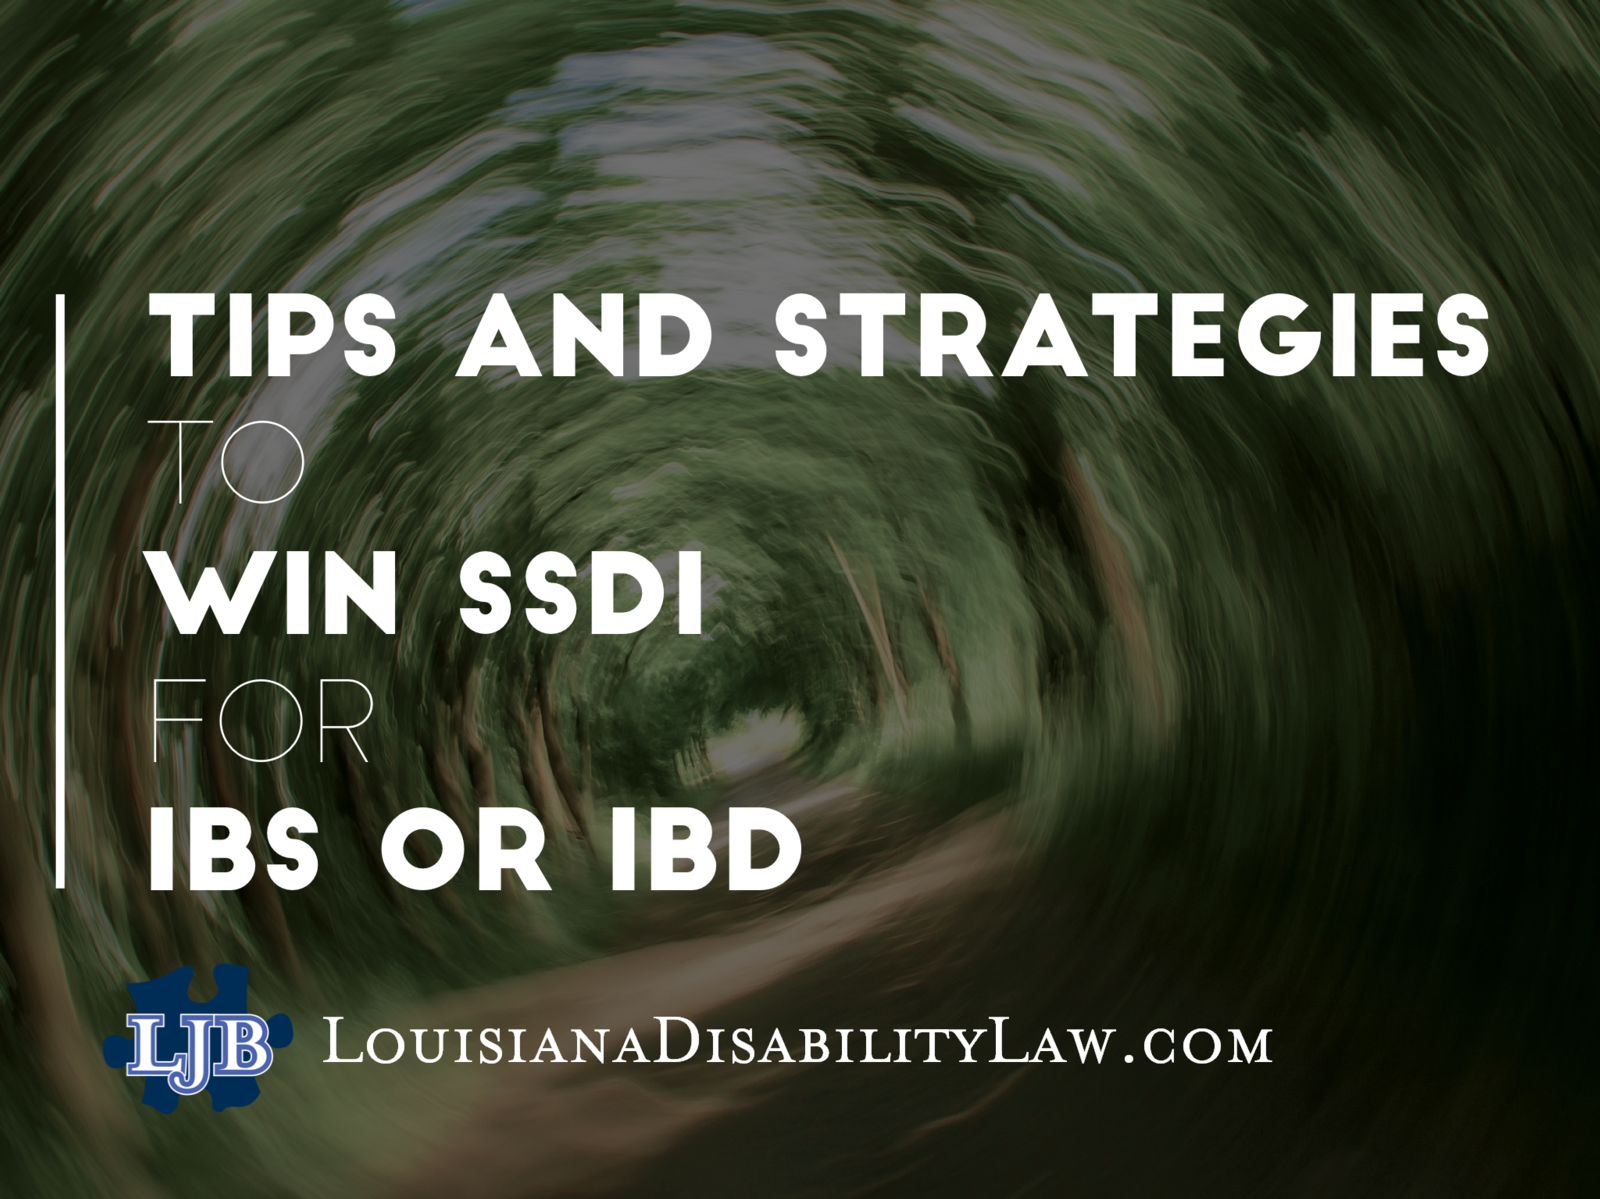 Tips and Strategies to Win Social Security Disability for IBS or IBD